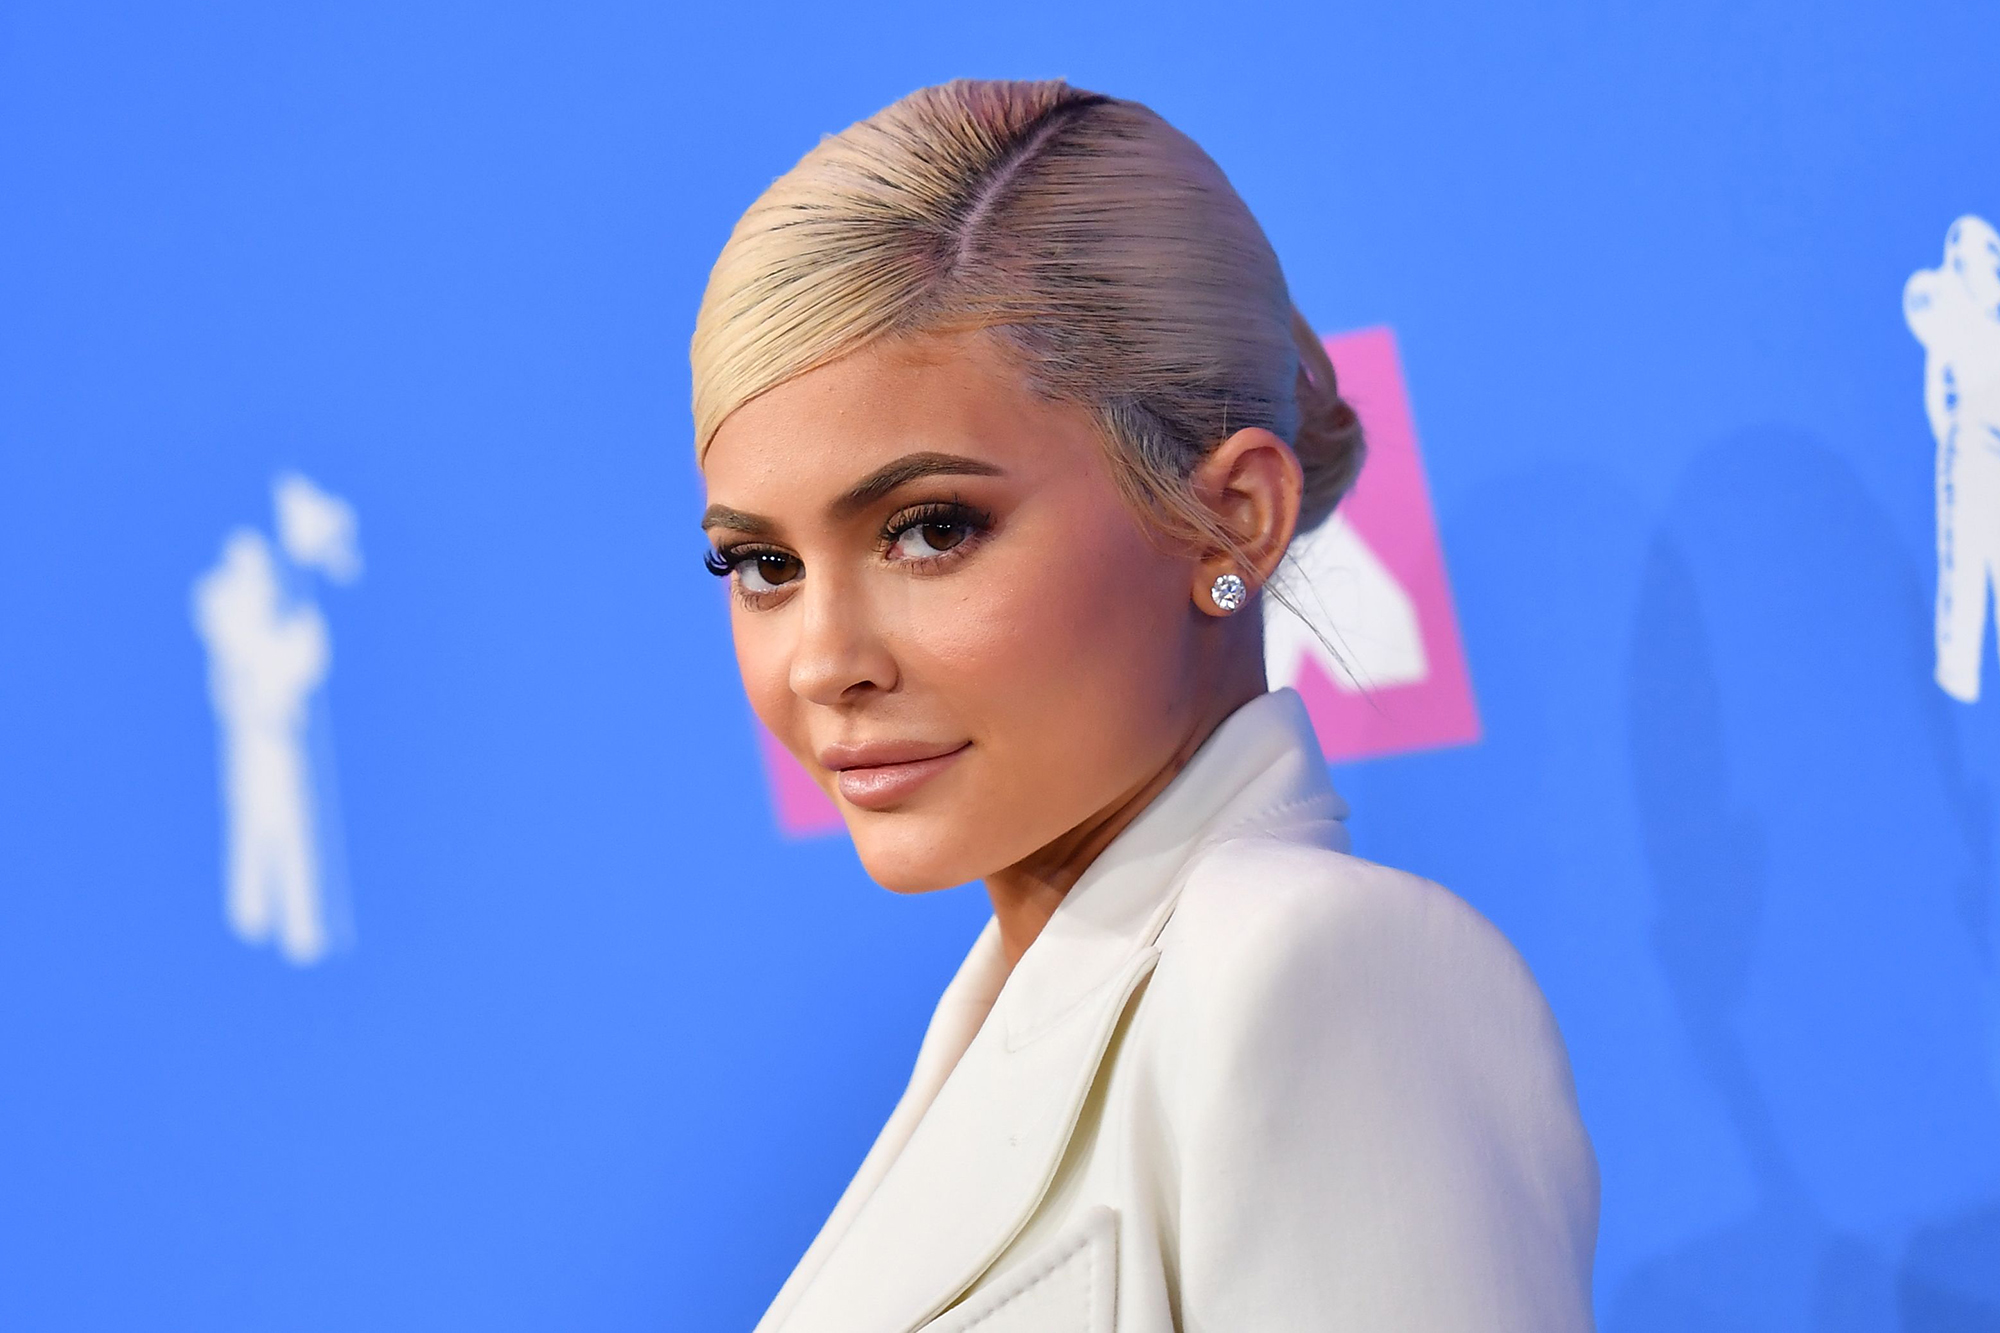 89c9c6f35 Grab Kylie Jenner's Latest Lip Kit While You Can — Only at Ulta!